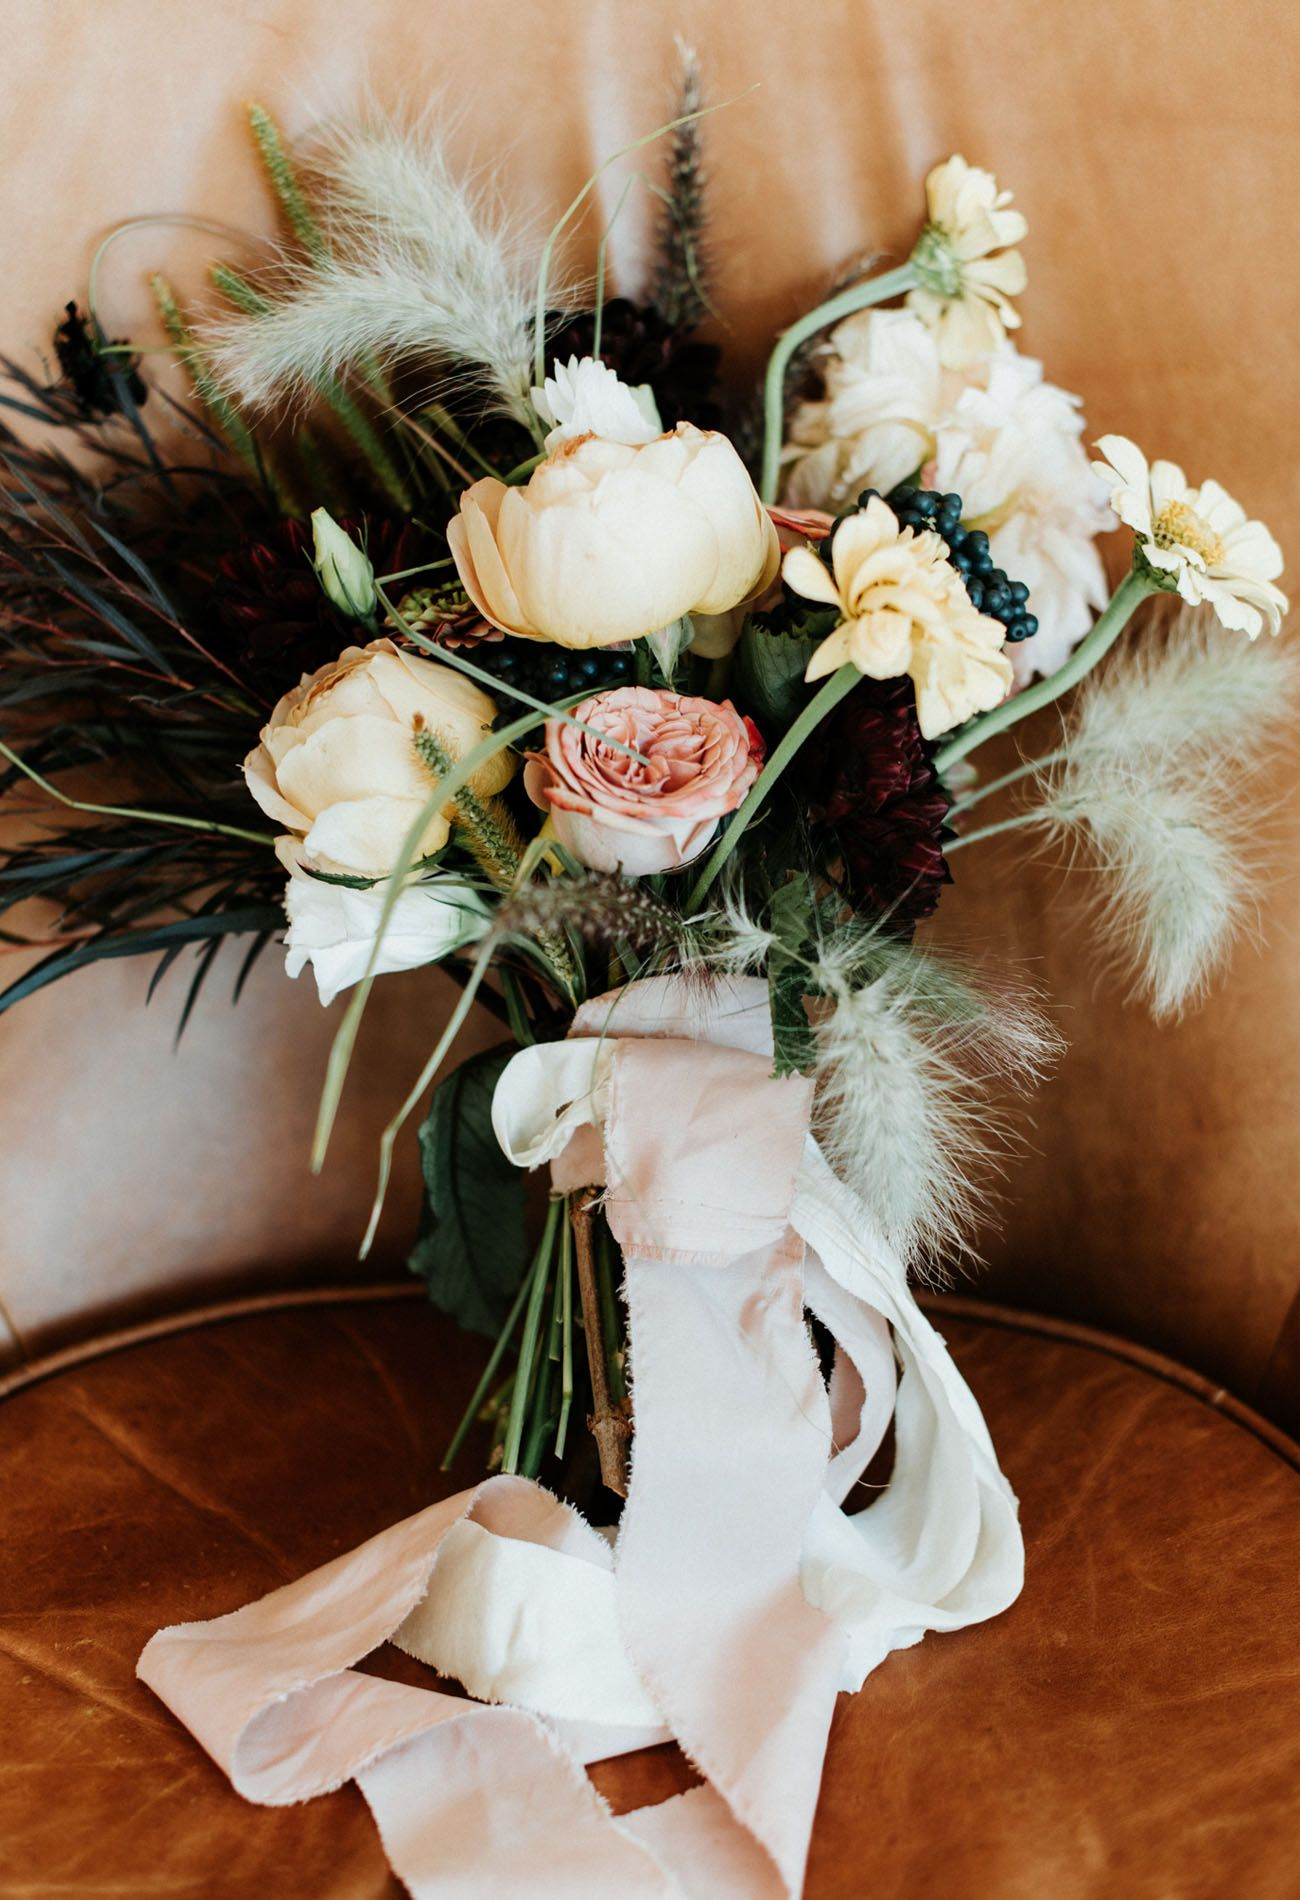 Rugged Relaxed And Urban An Autumnal Wedding In A Catskills Lodge